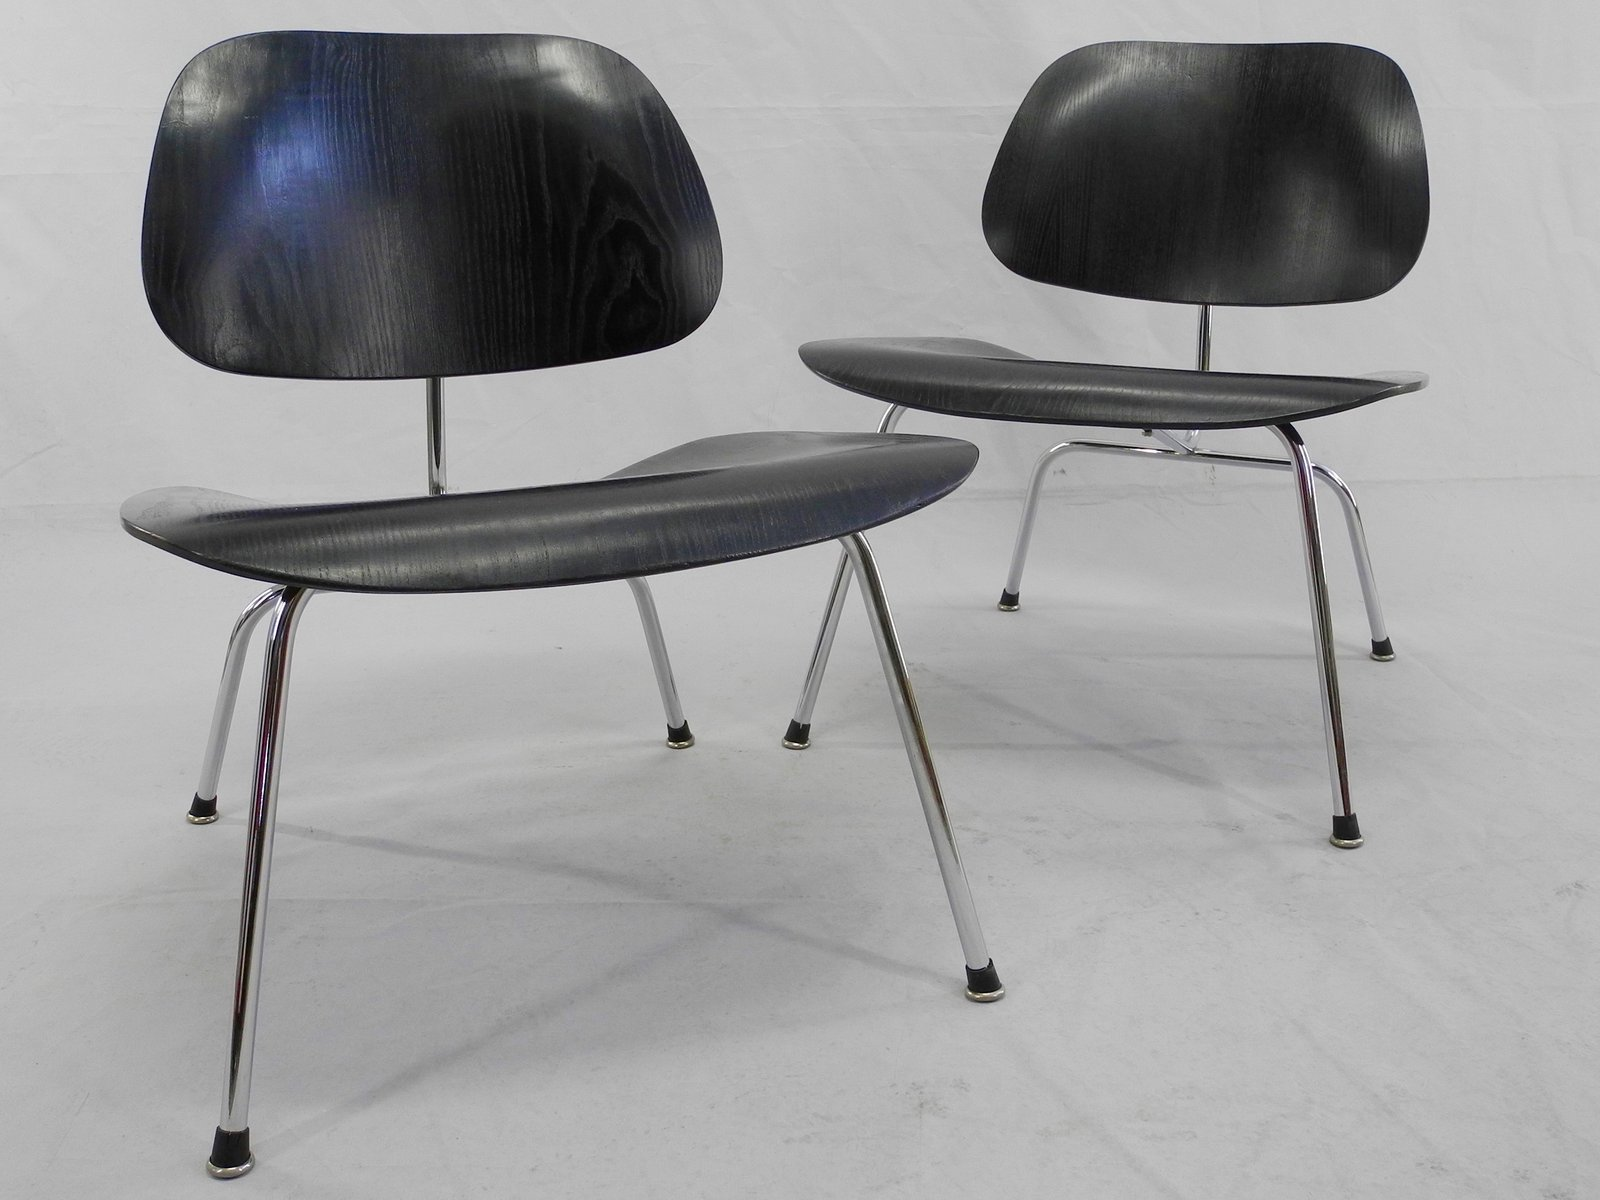 LCM Chairs by Charles & Ray Eames for Herman Miller Set of 2 for